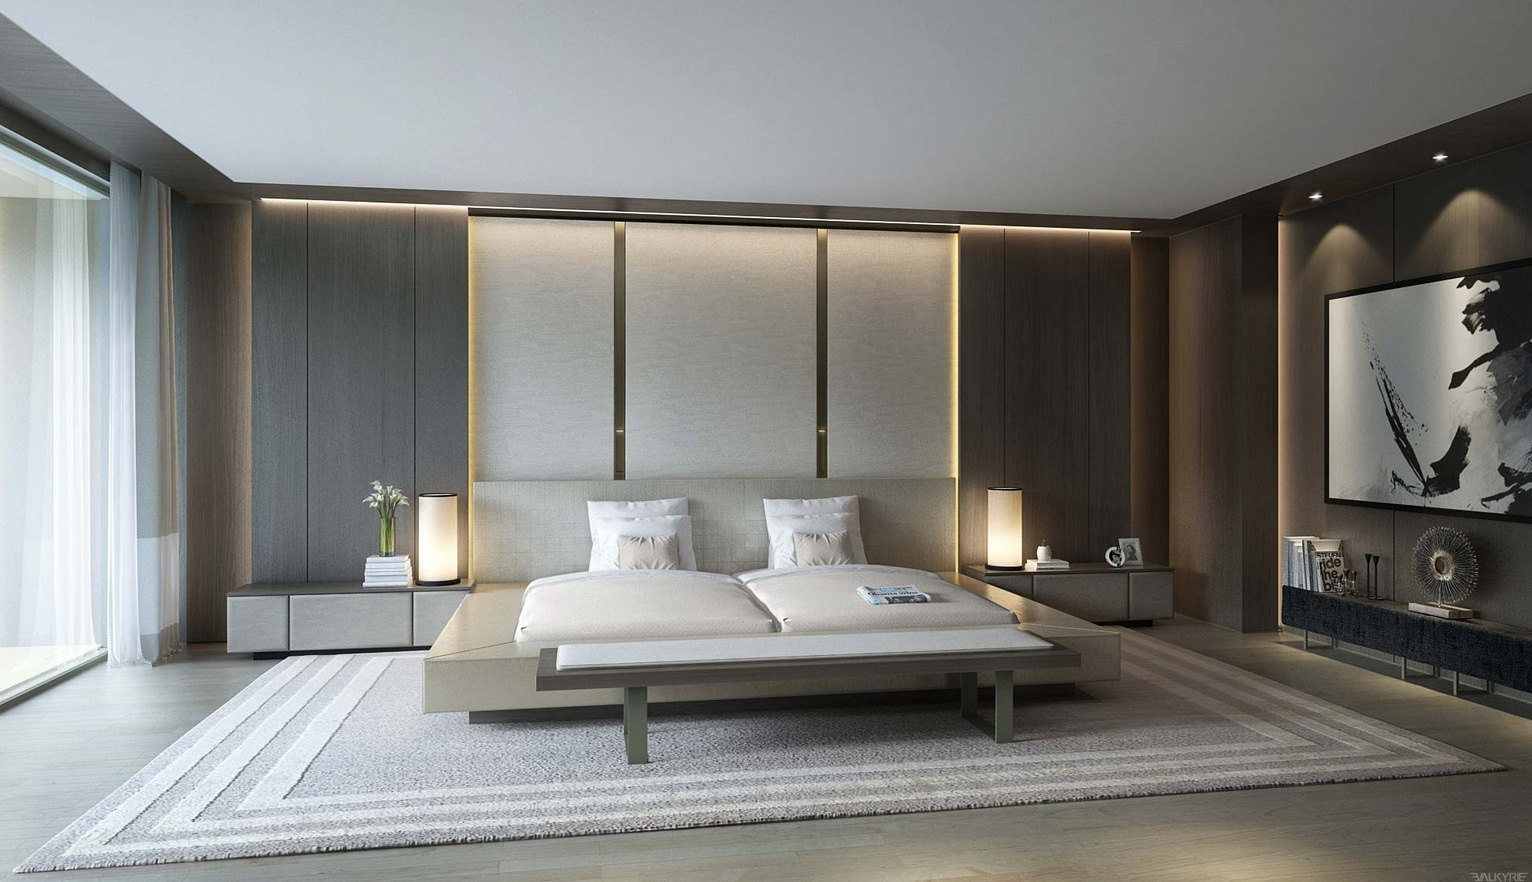 21 cool bedrooms for clean and simple design inspiration for Modern room designs